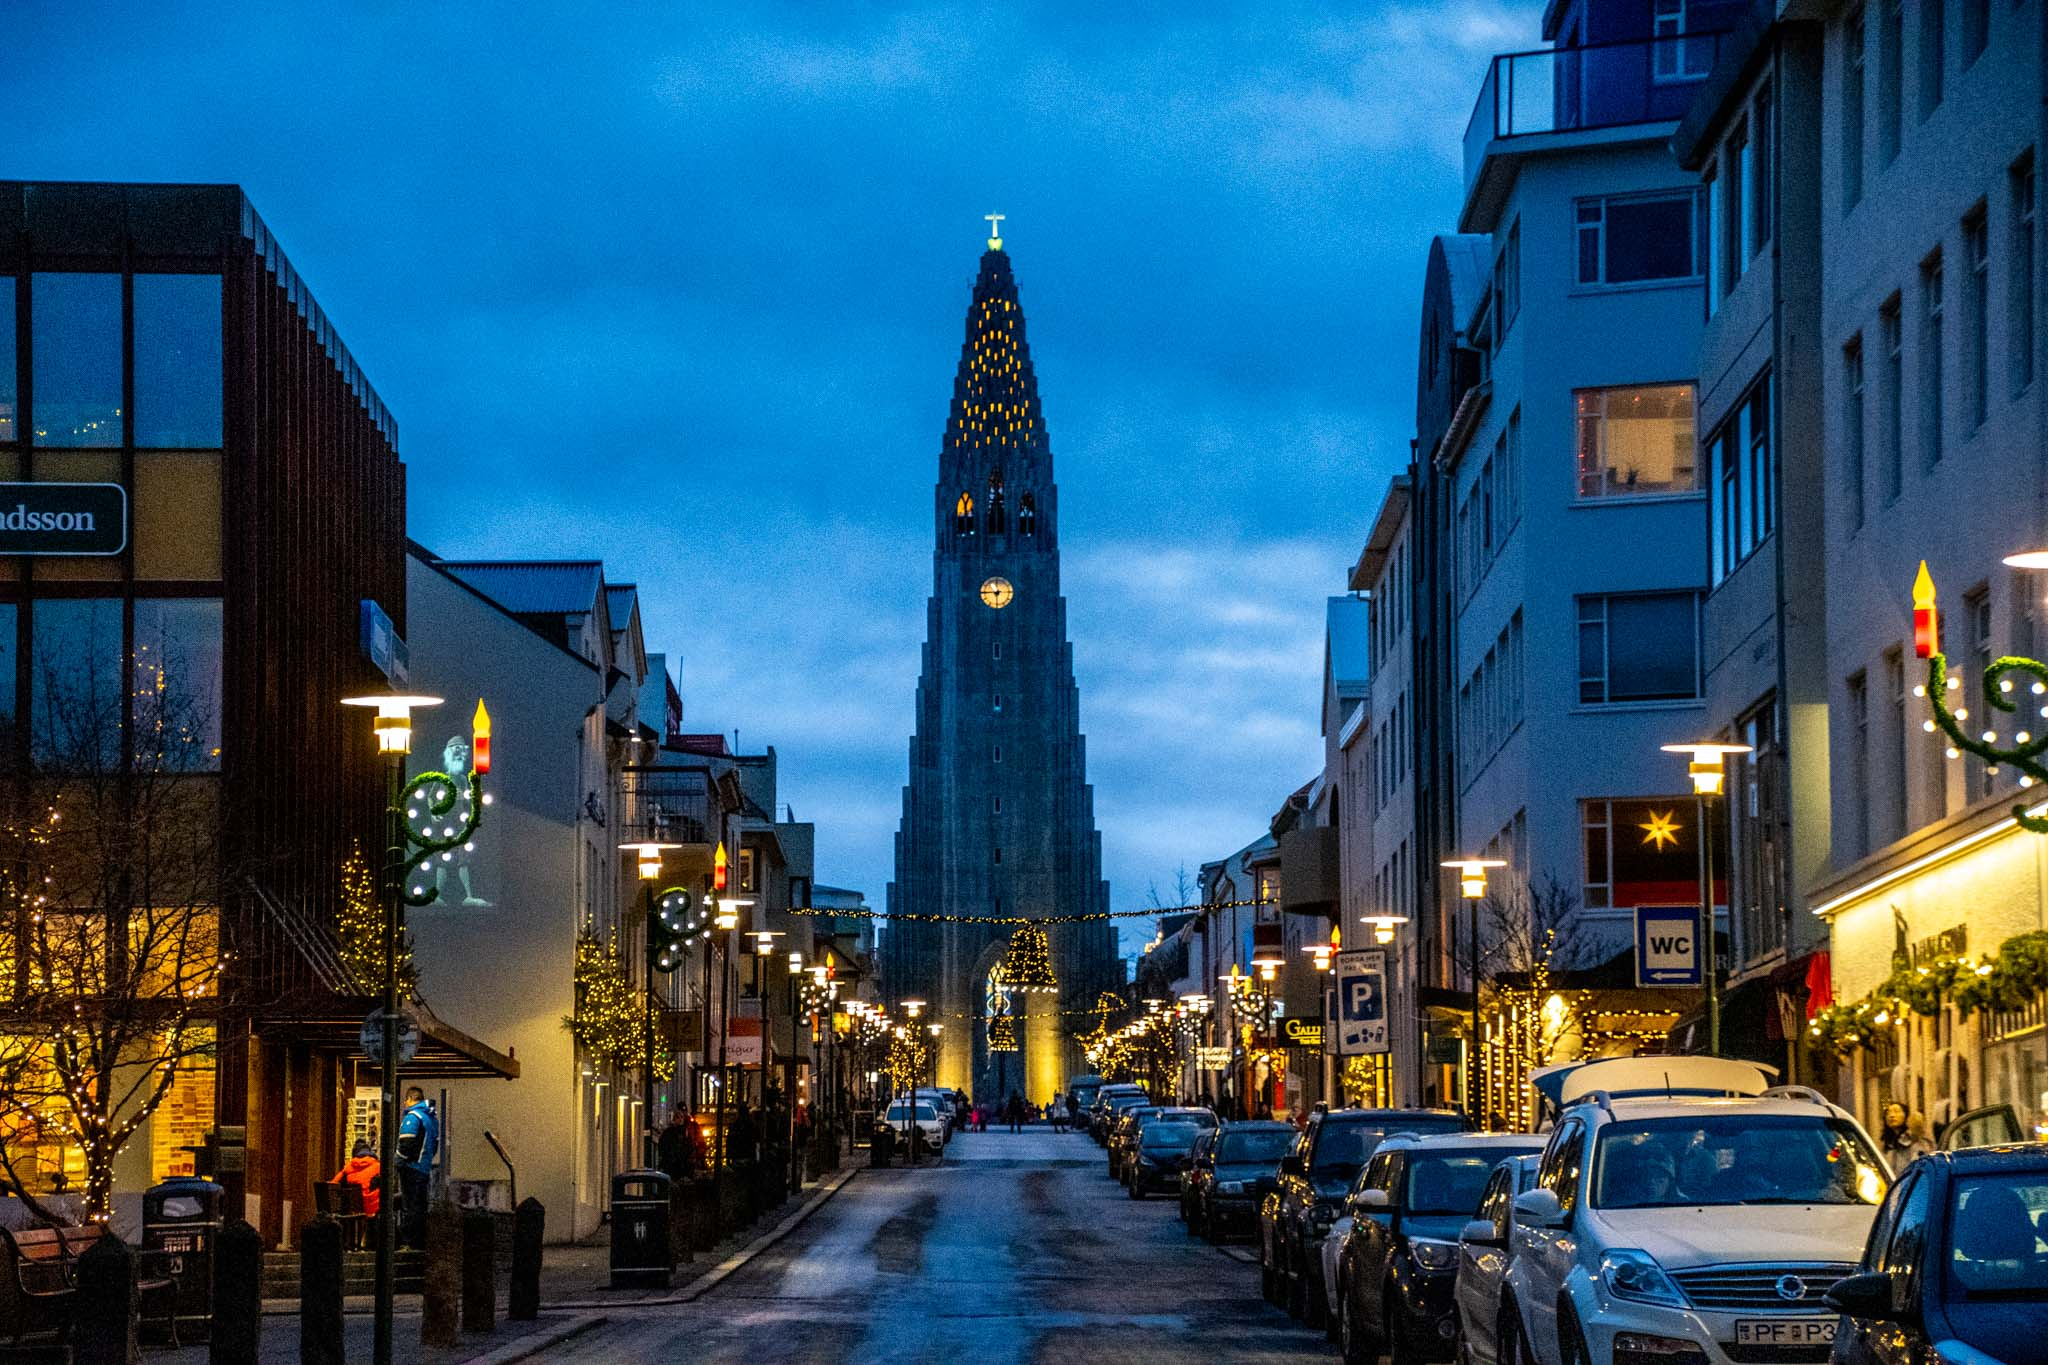 Downtown Reykjavik with the Hallgrimskirkja Church at the top of the street.